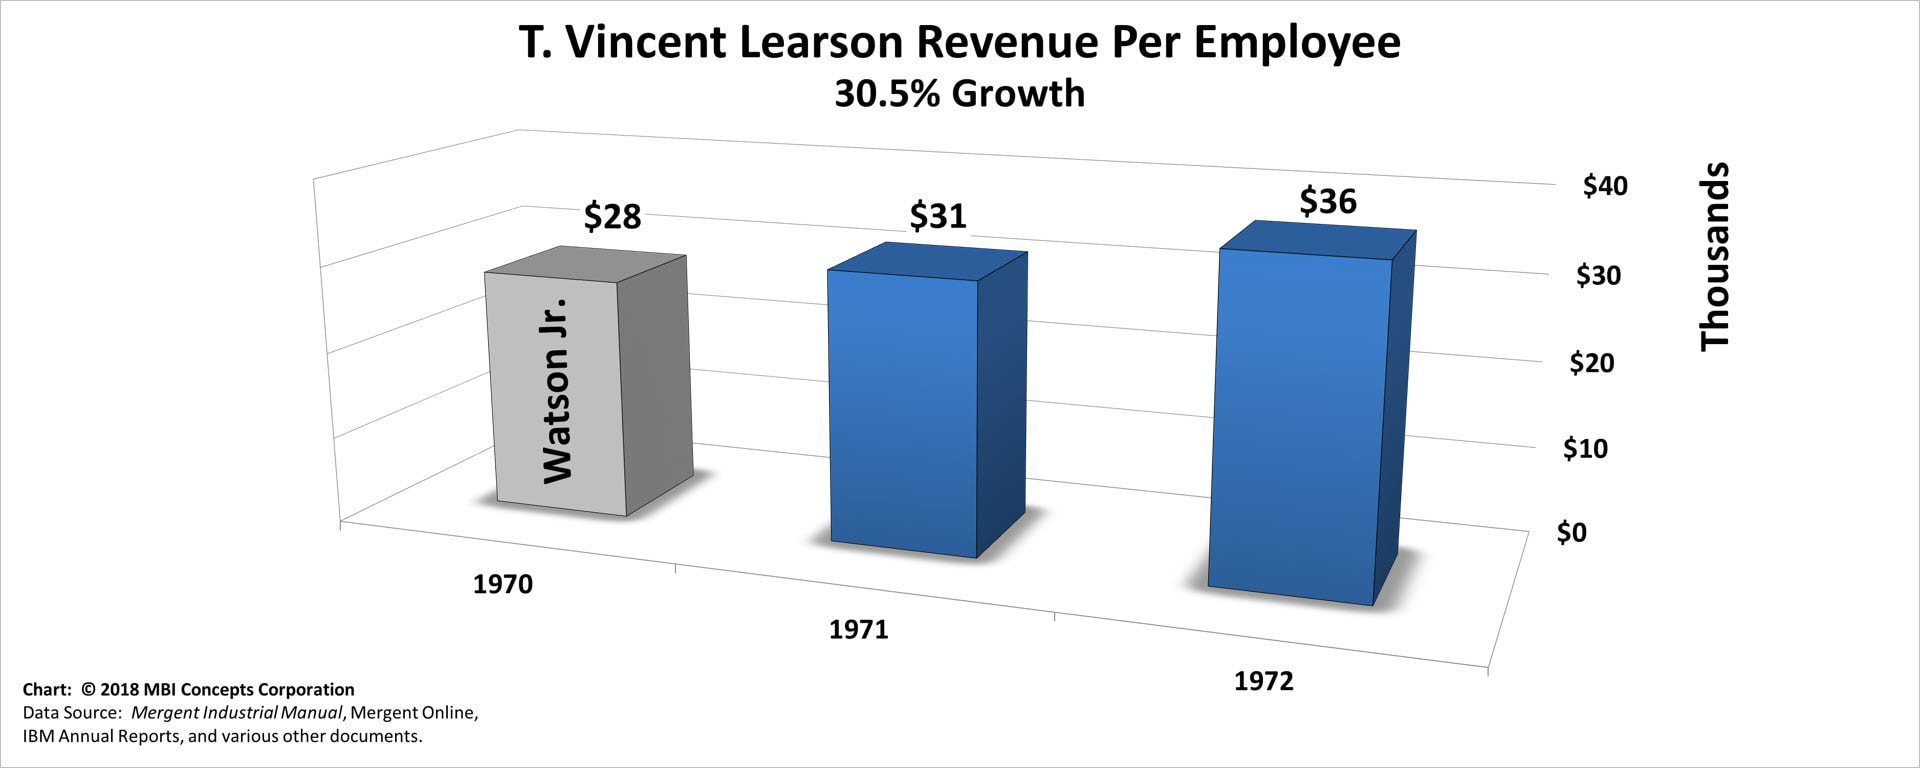 Bar chart of T. Vincent Learson's Yearly Revenue per Employee over his 18 months as IBM's CEO from 1971 to 1972.